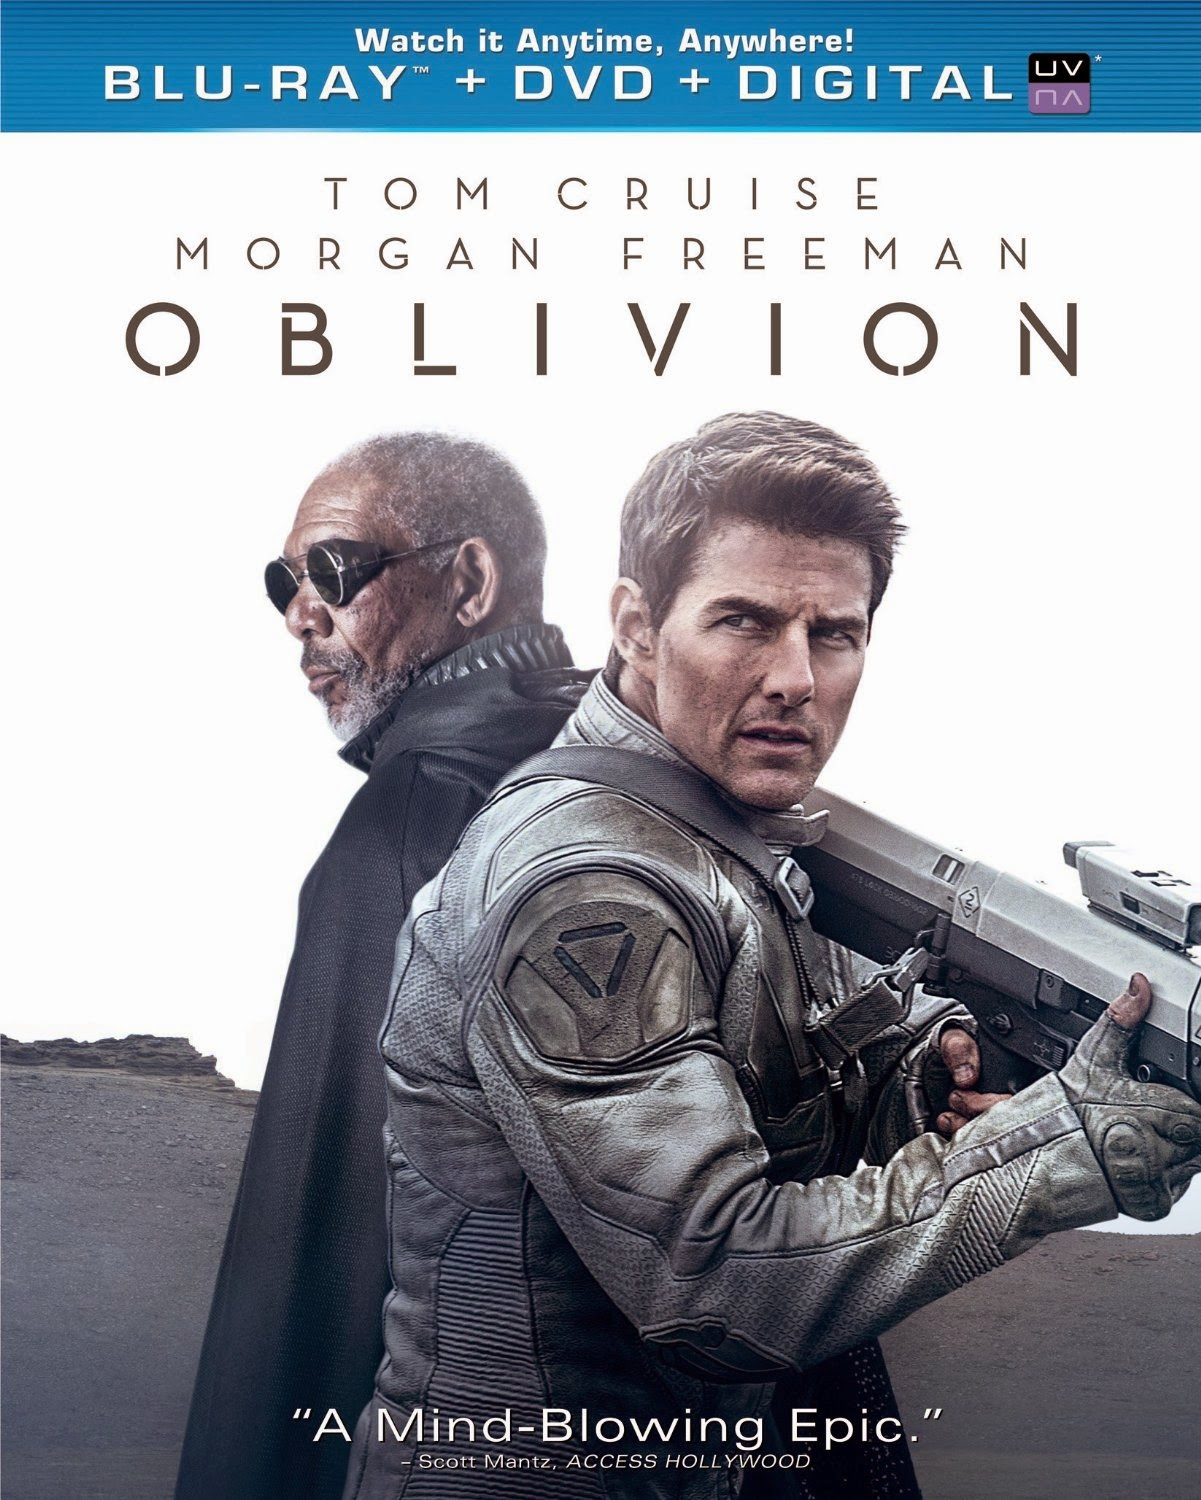 Oblivion (Blu-ray + DVD + Digital Copy + UltraViolet) (2013) www.boxofficemovies.co.vu